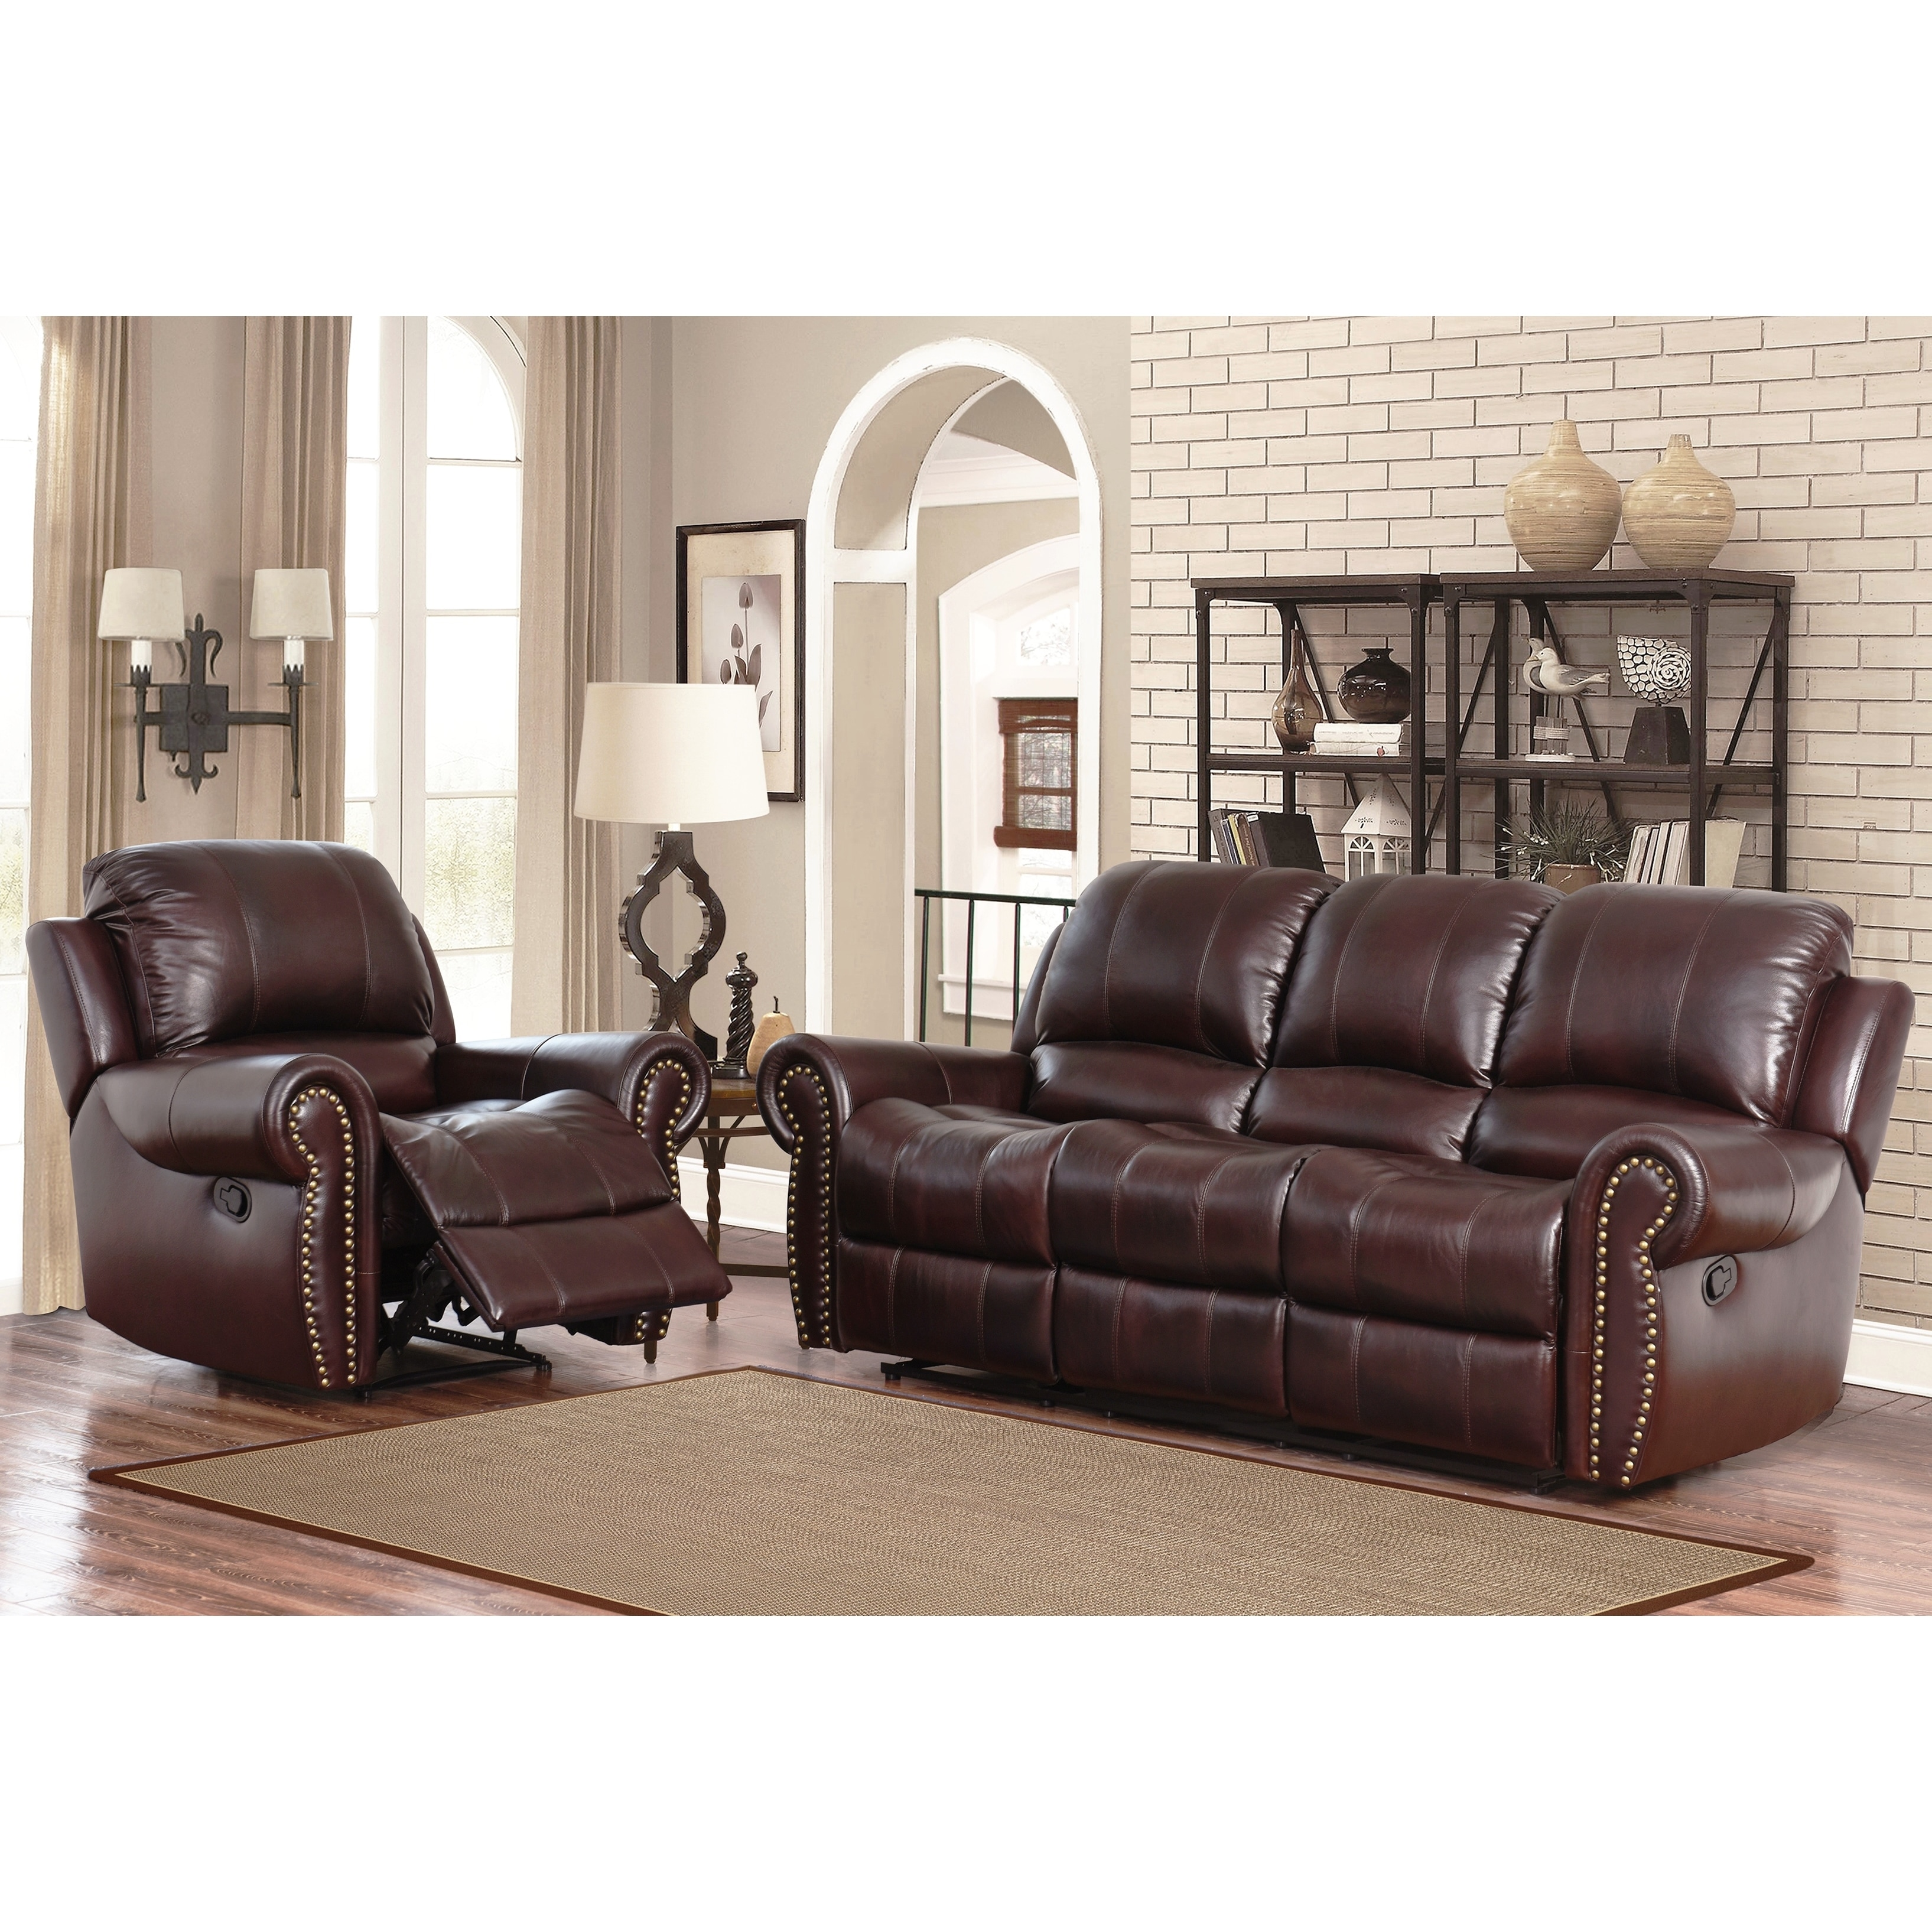 Abbyson broadway top grain leather reclining 2 piece living room set